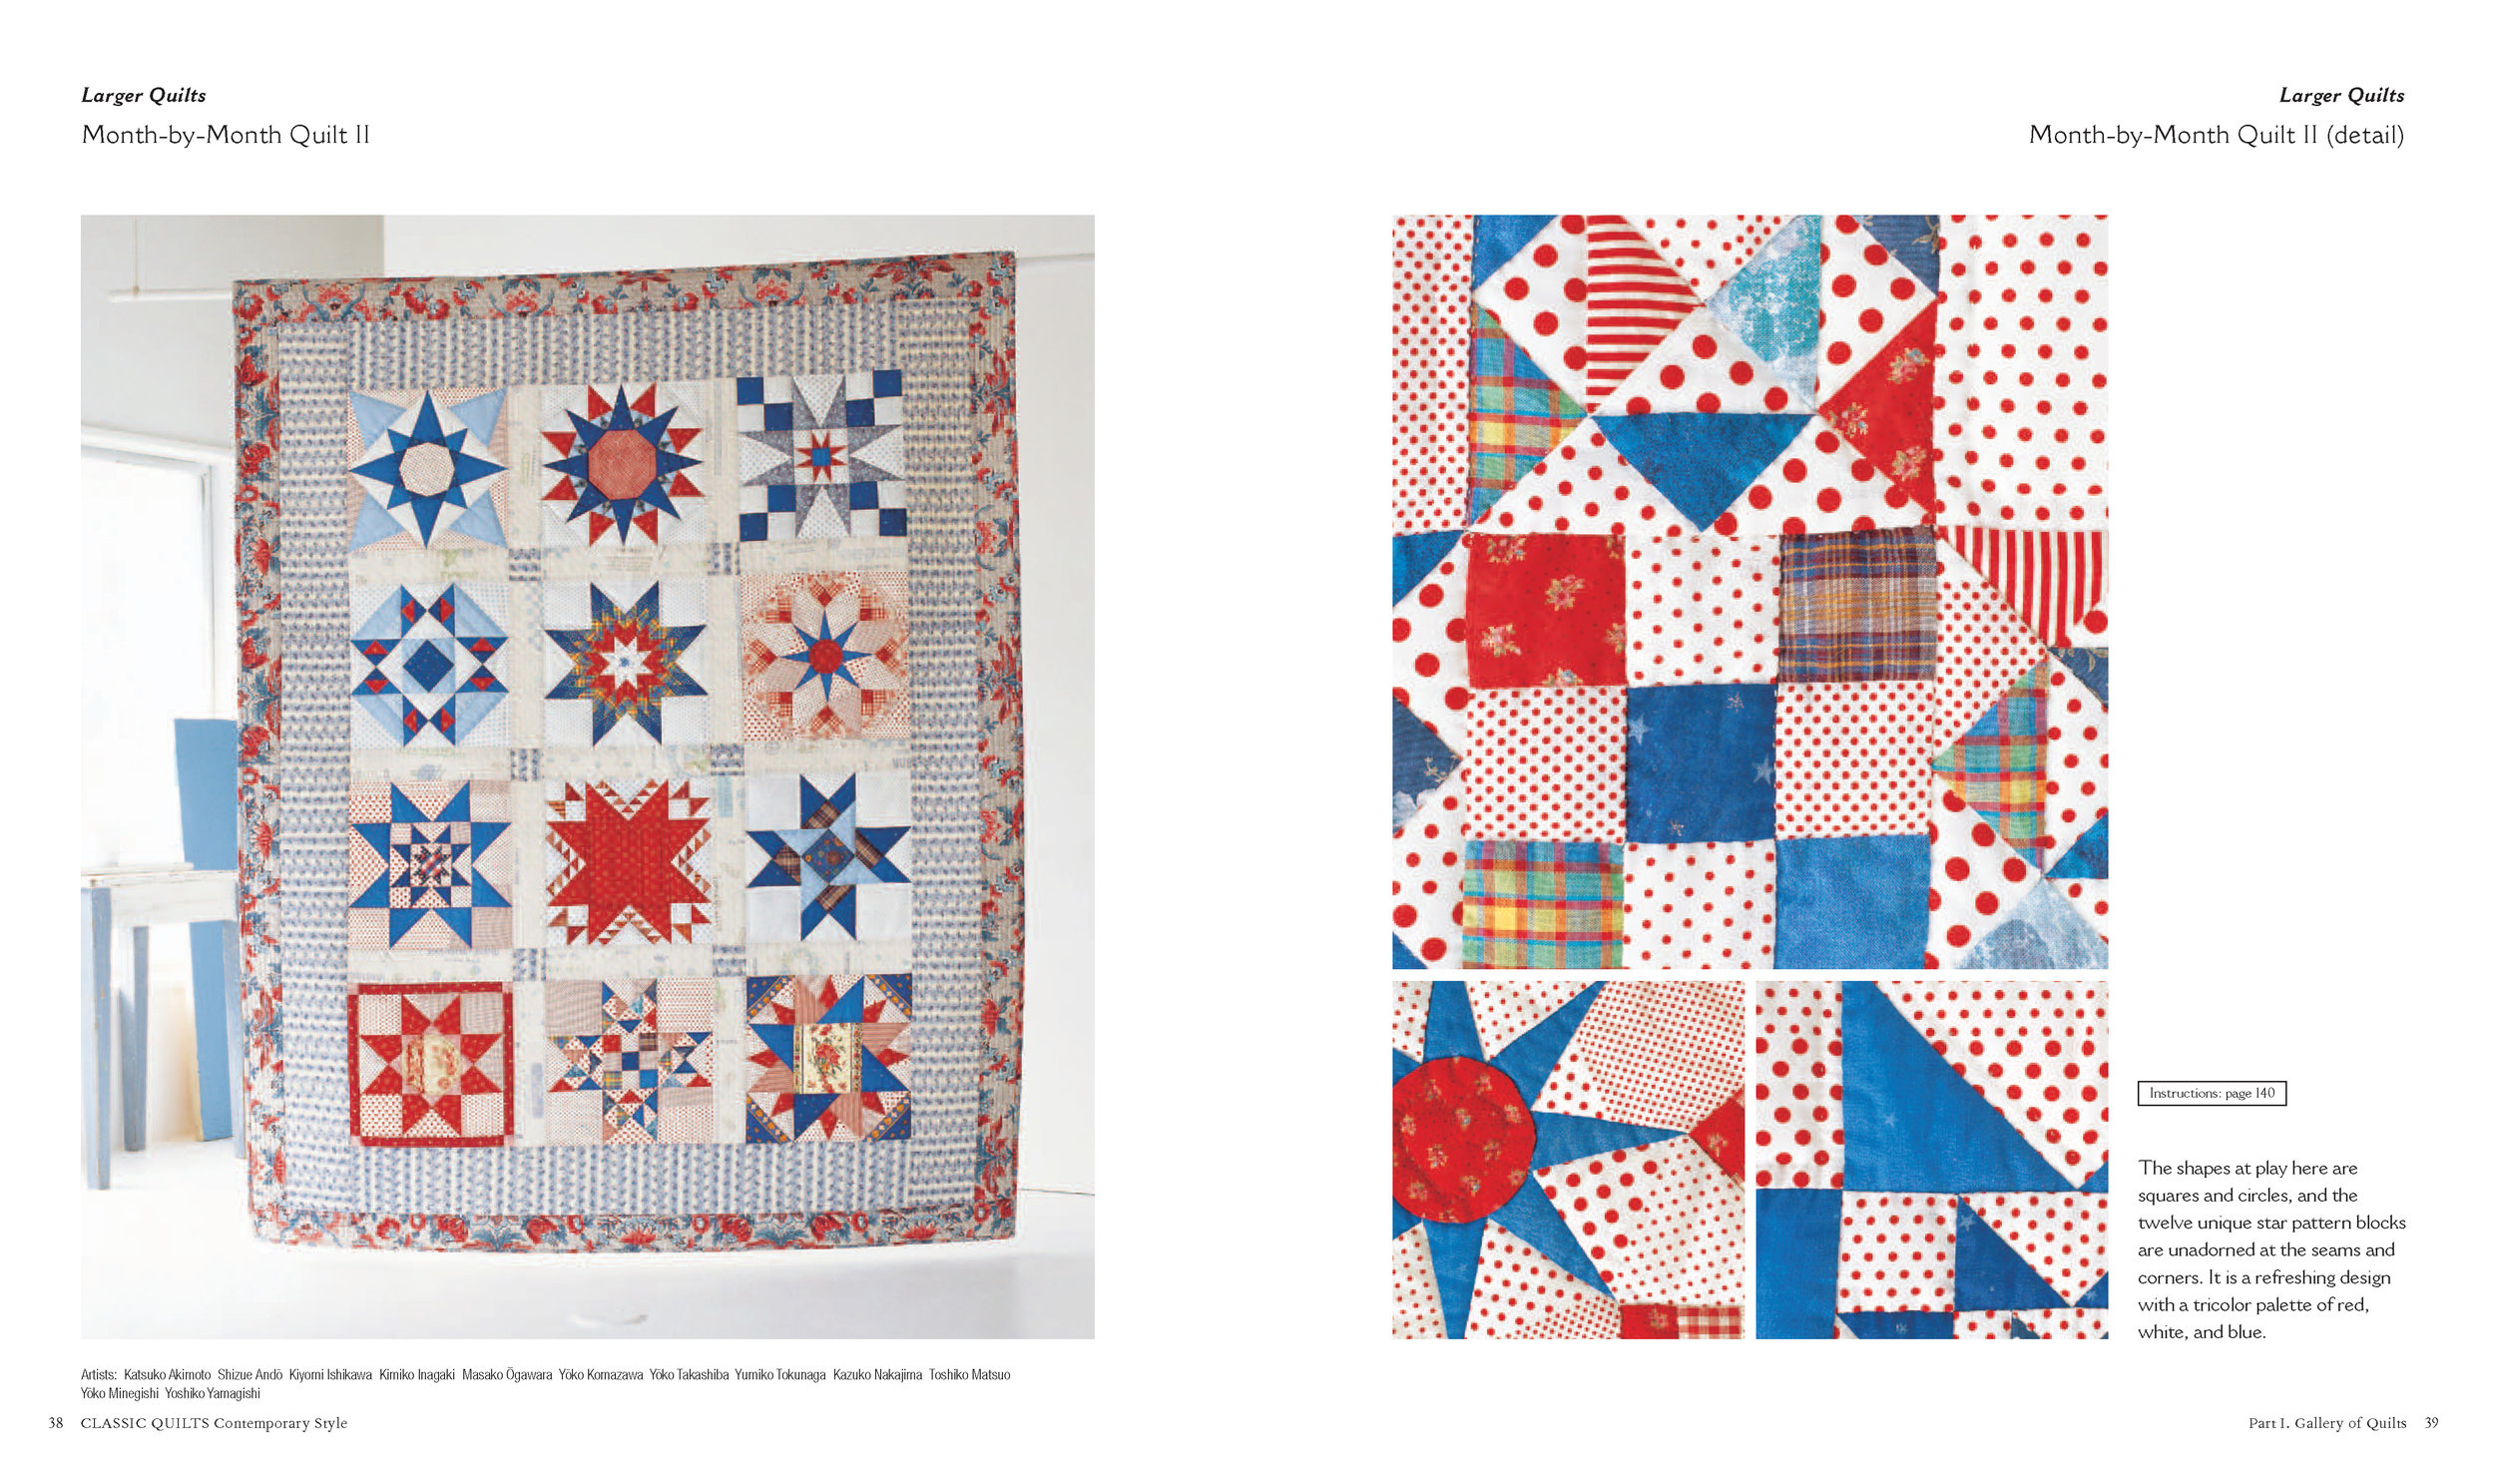 Classic Quilts 38.39.jpg